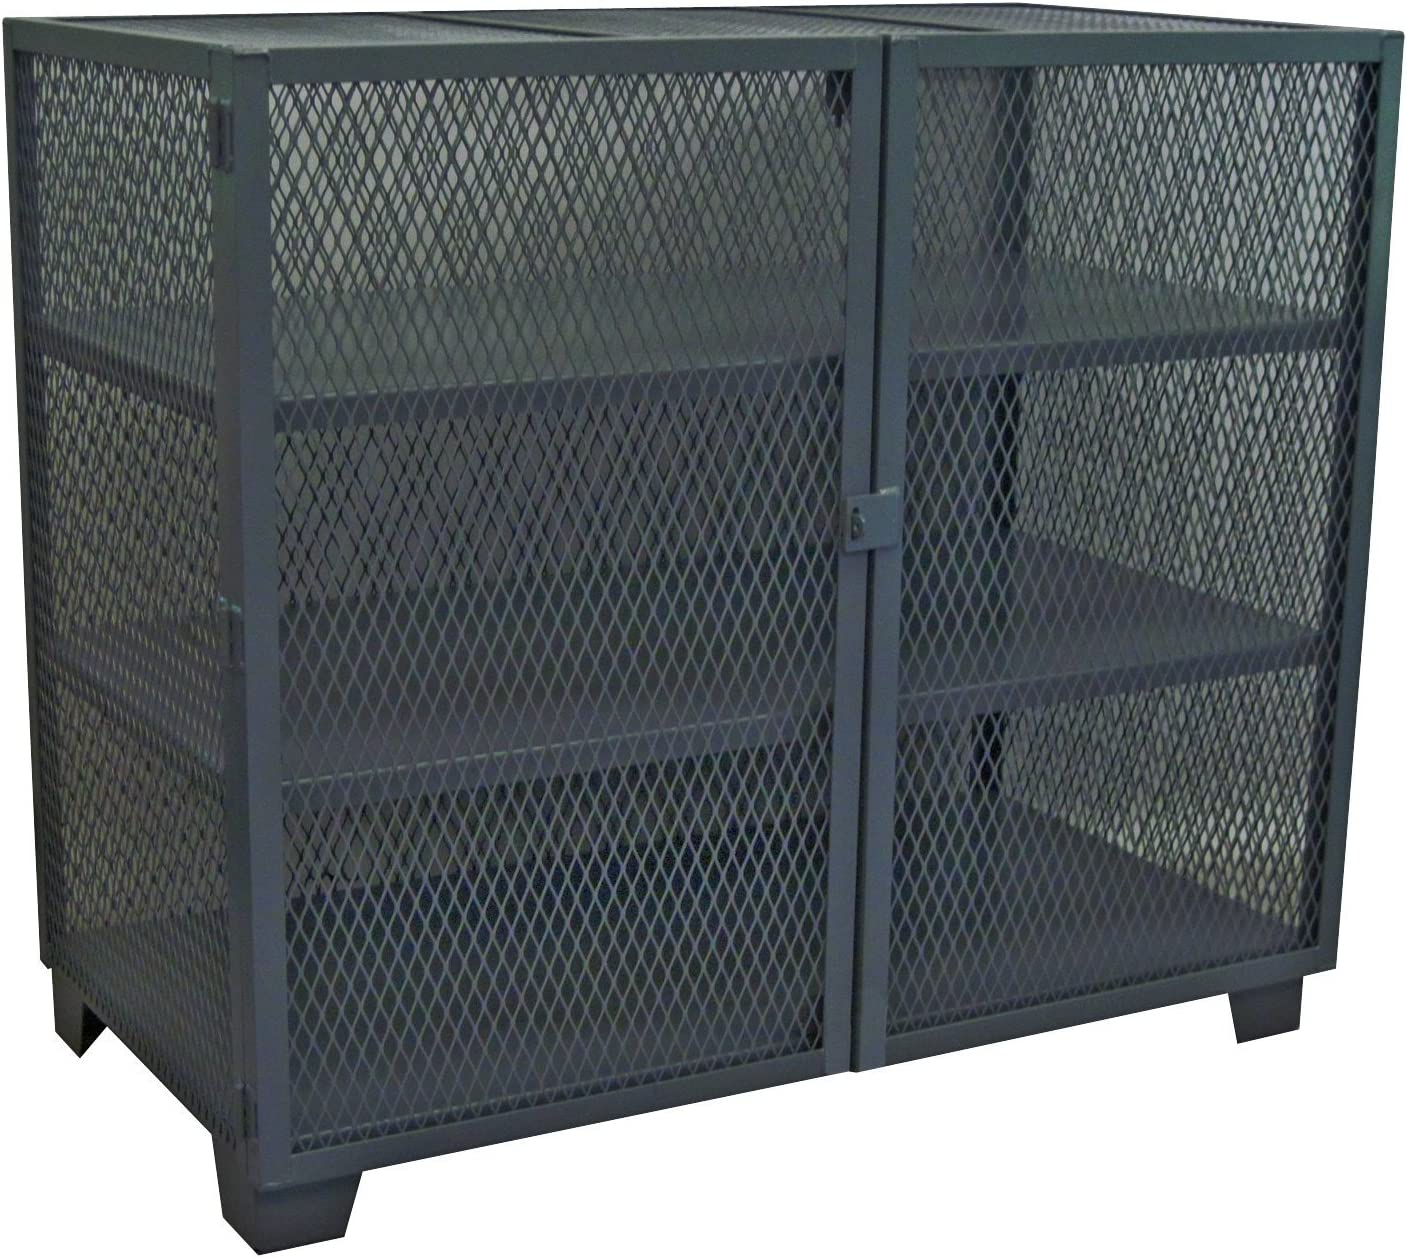 Jamco Products Inc Bombing new work MC460-BL Stationary Mesh Cabinet All items in the store Security 36